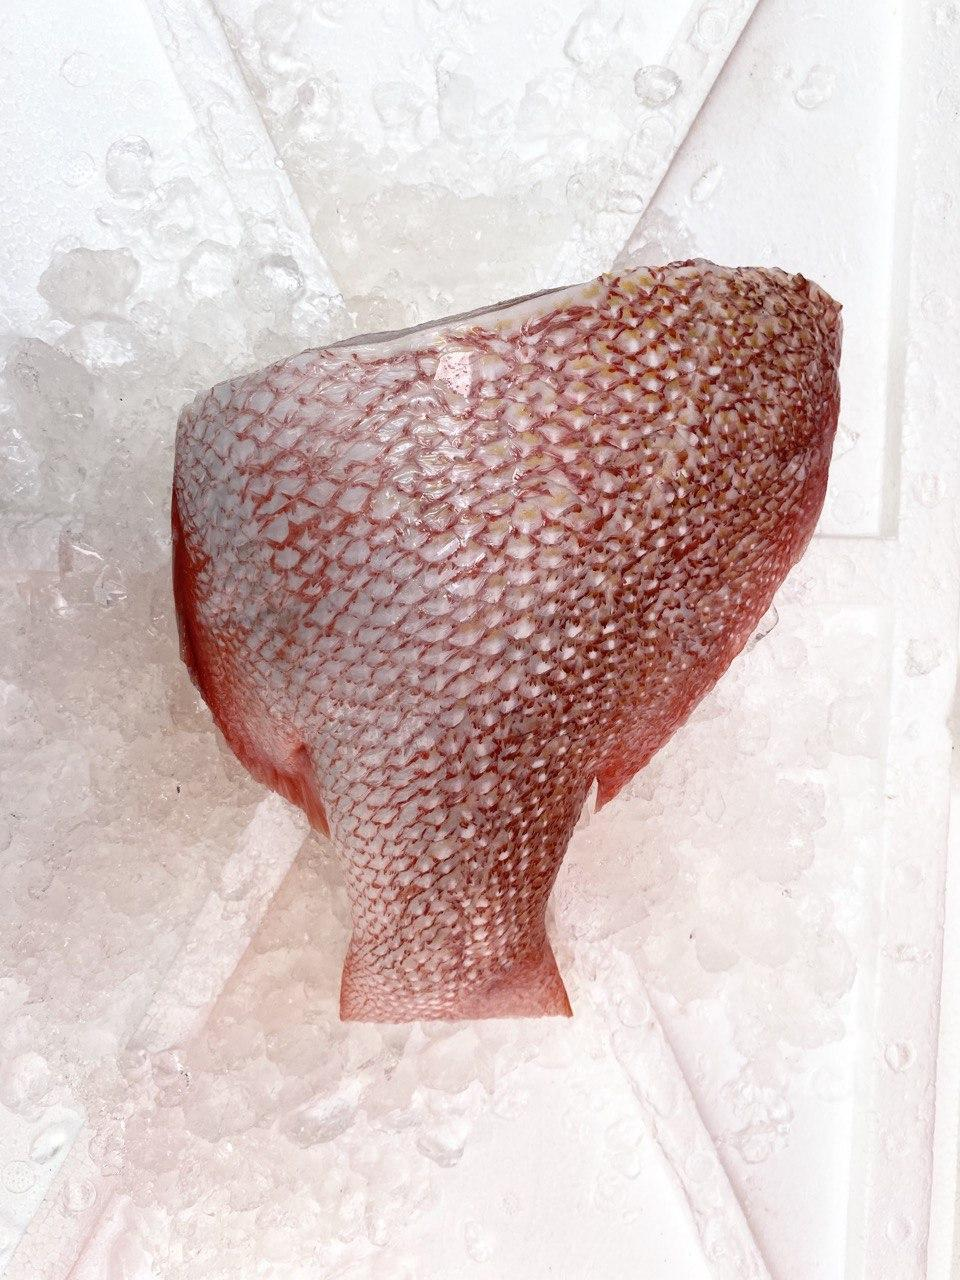 Emperor Red Snapper, Tail Section, Fresh